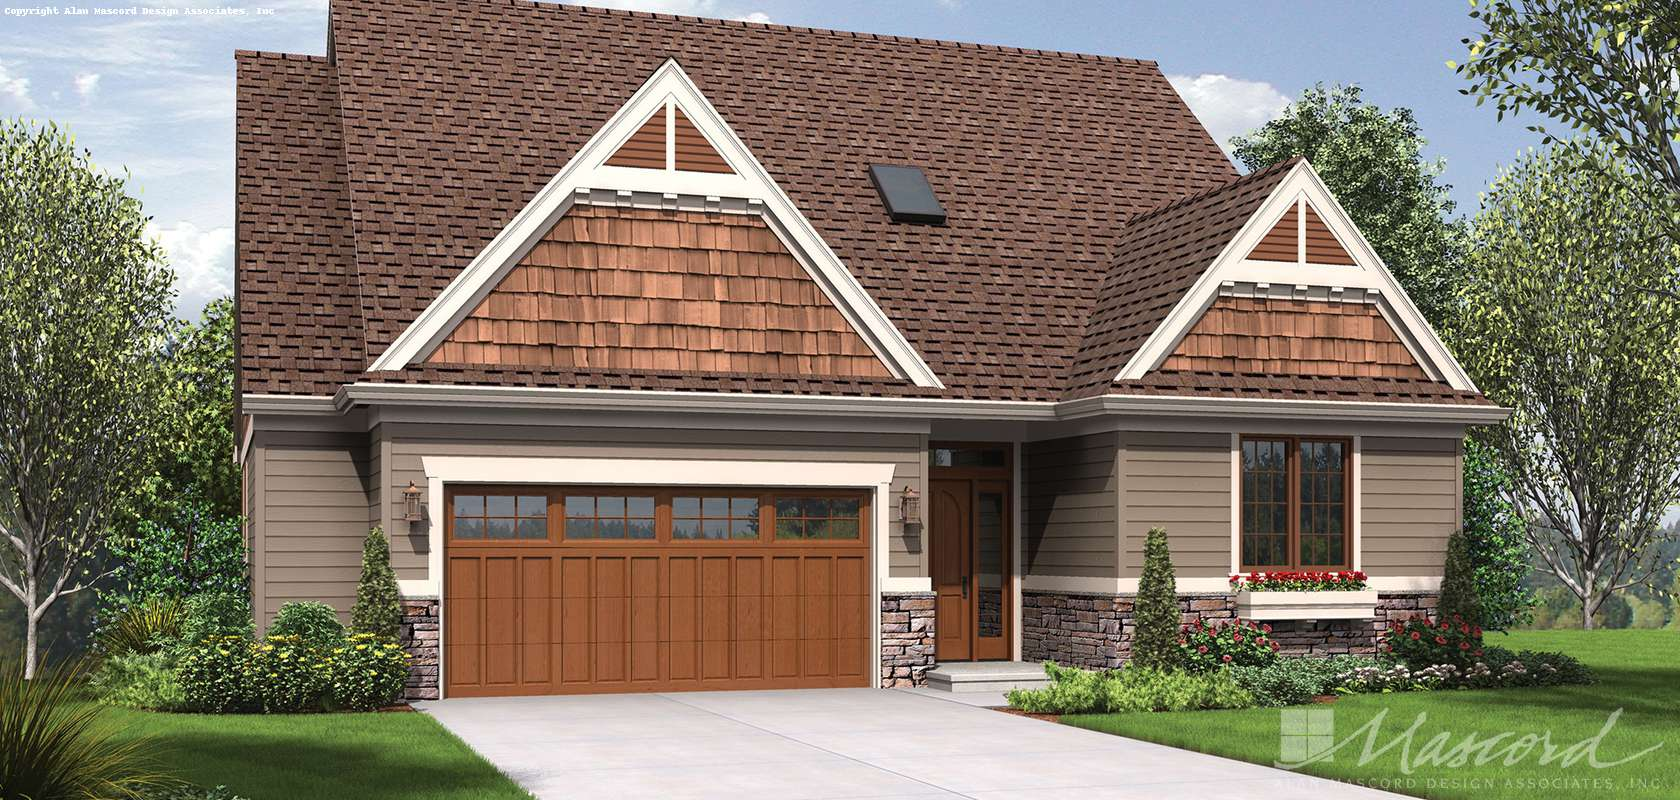 Mascord House Plan 1221CC: The Newmarket